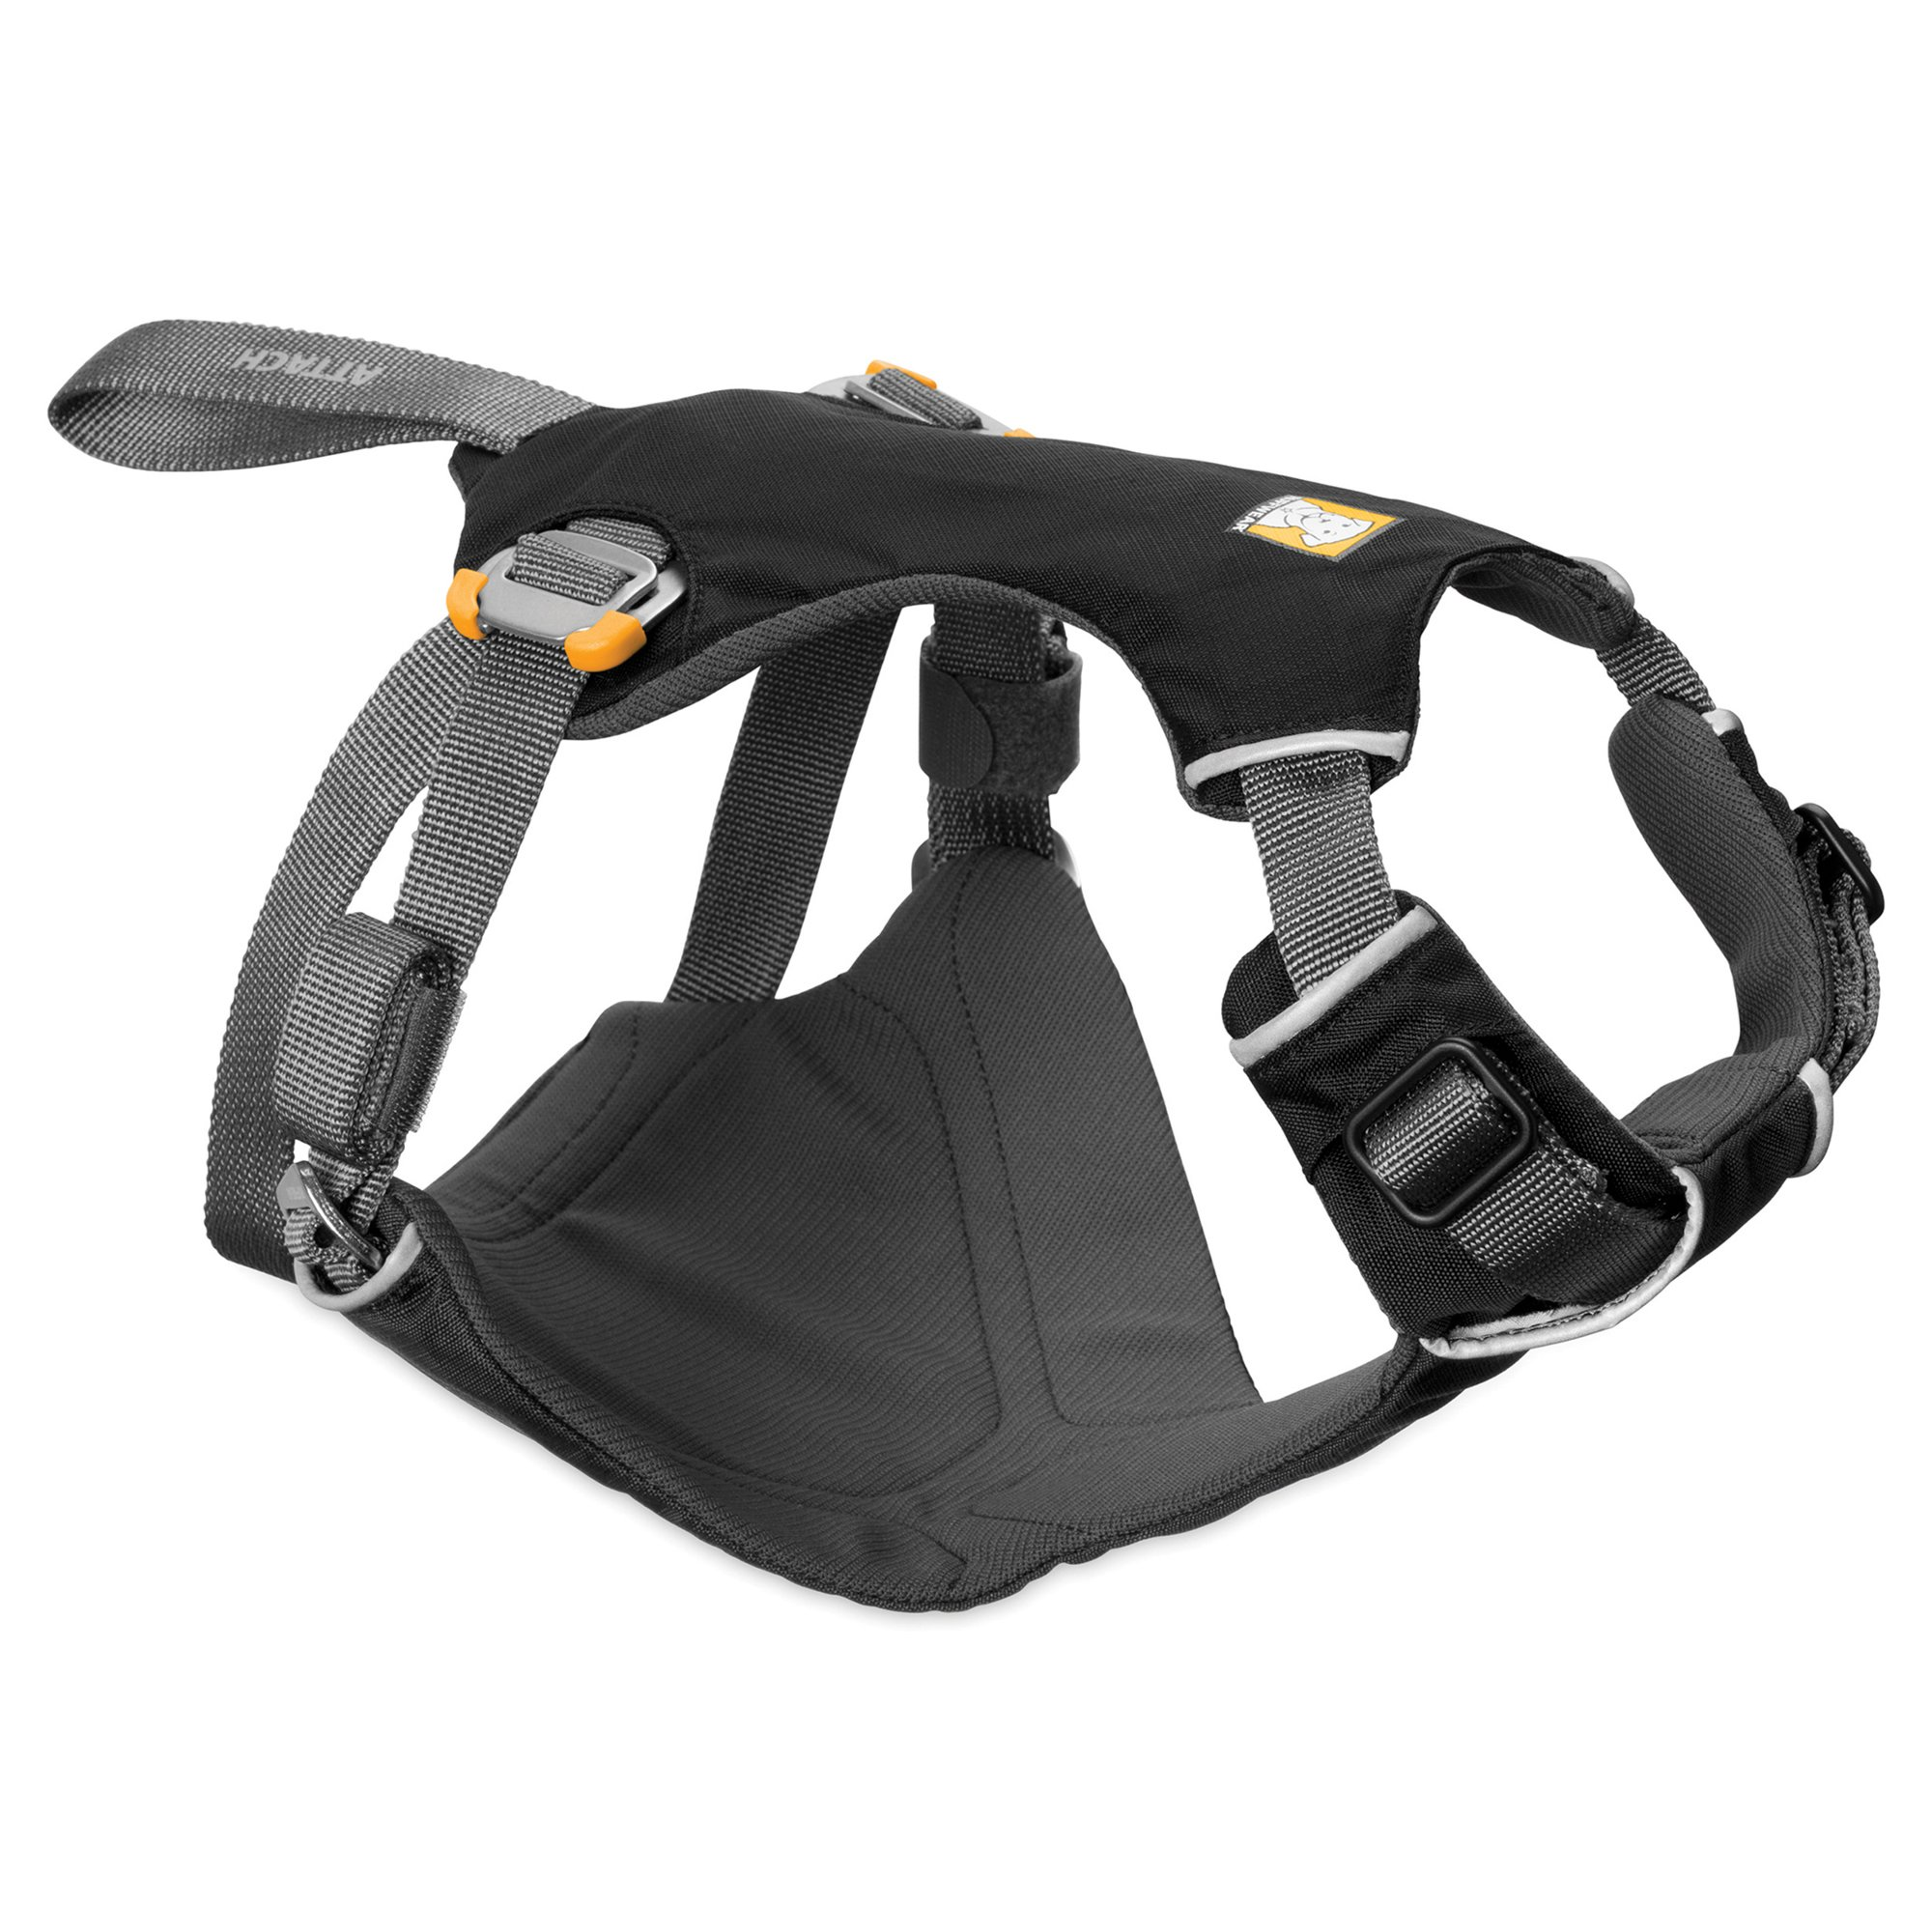 RUFFWEAR - Load Up Vehicle Restraint Harness for Dogs, Obsidian Black, Large/X-Large